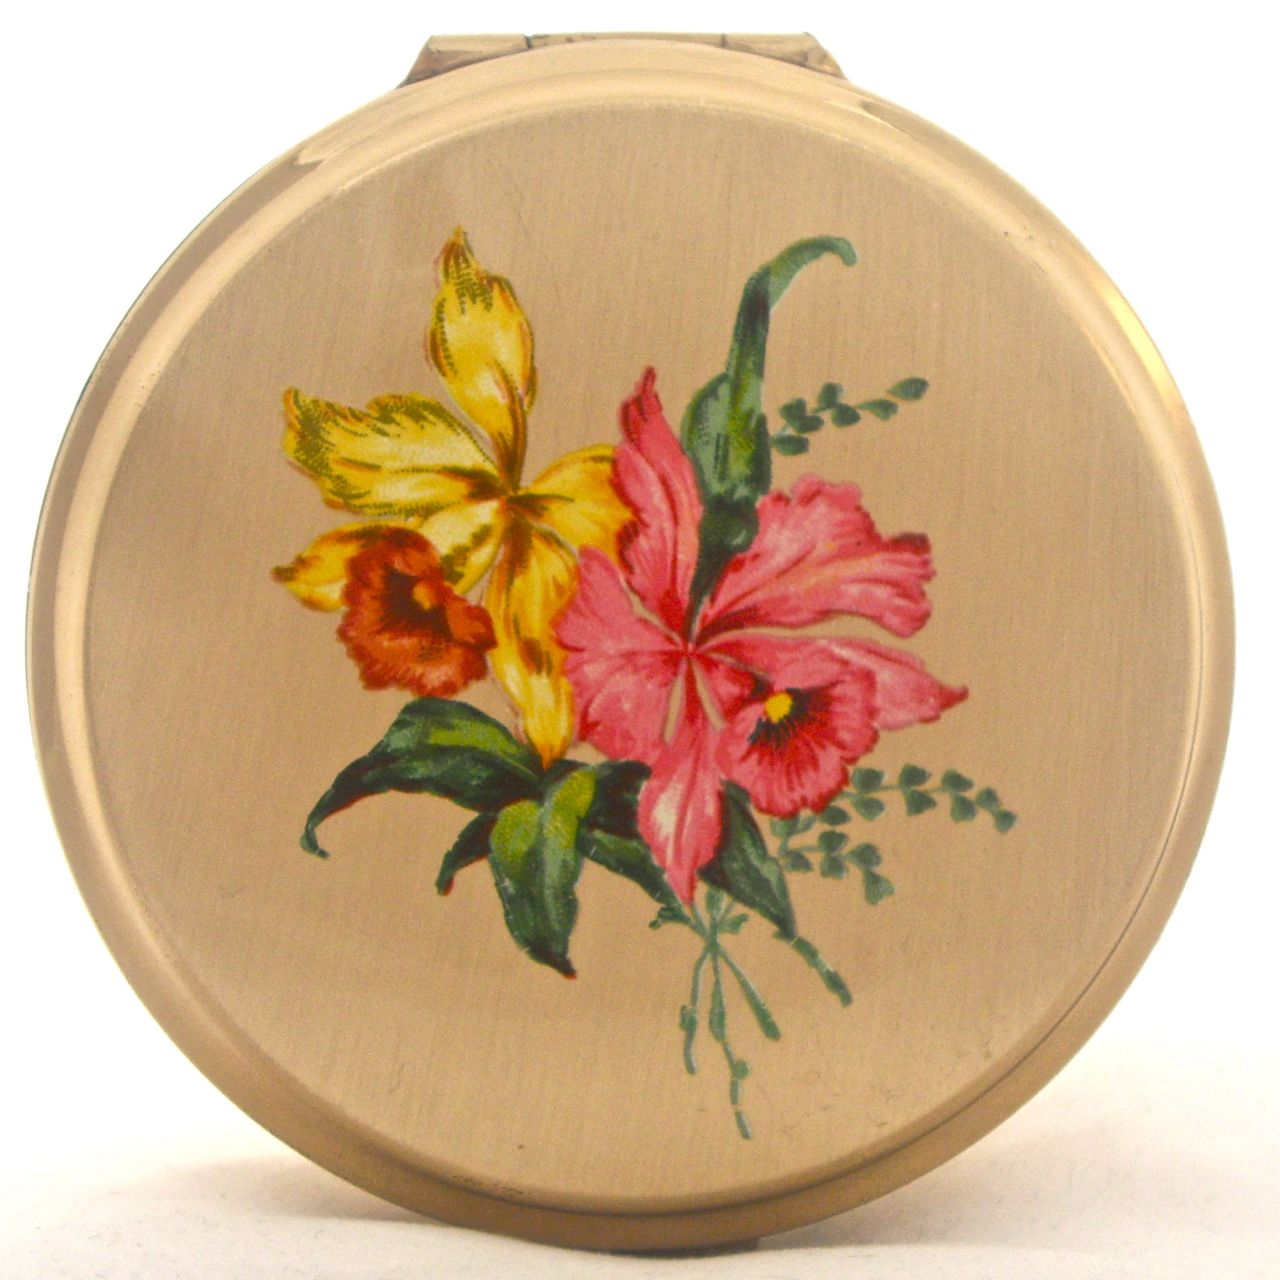 Vintage Orchid Stratton powder compact